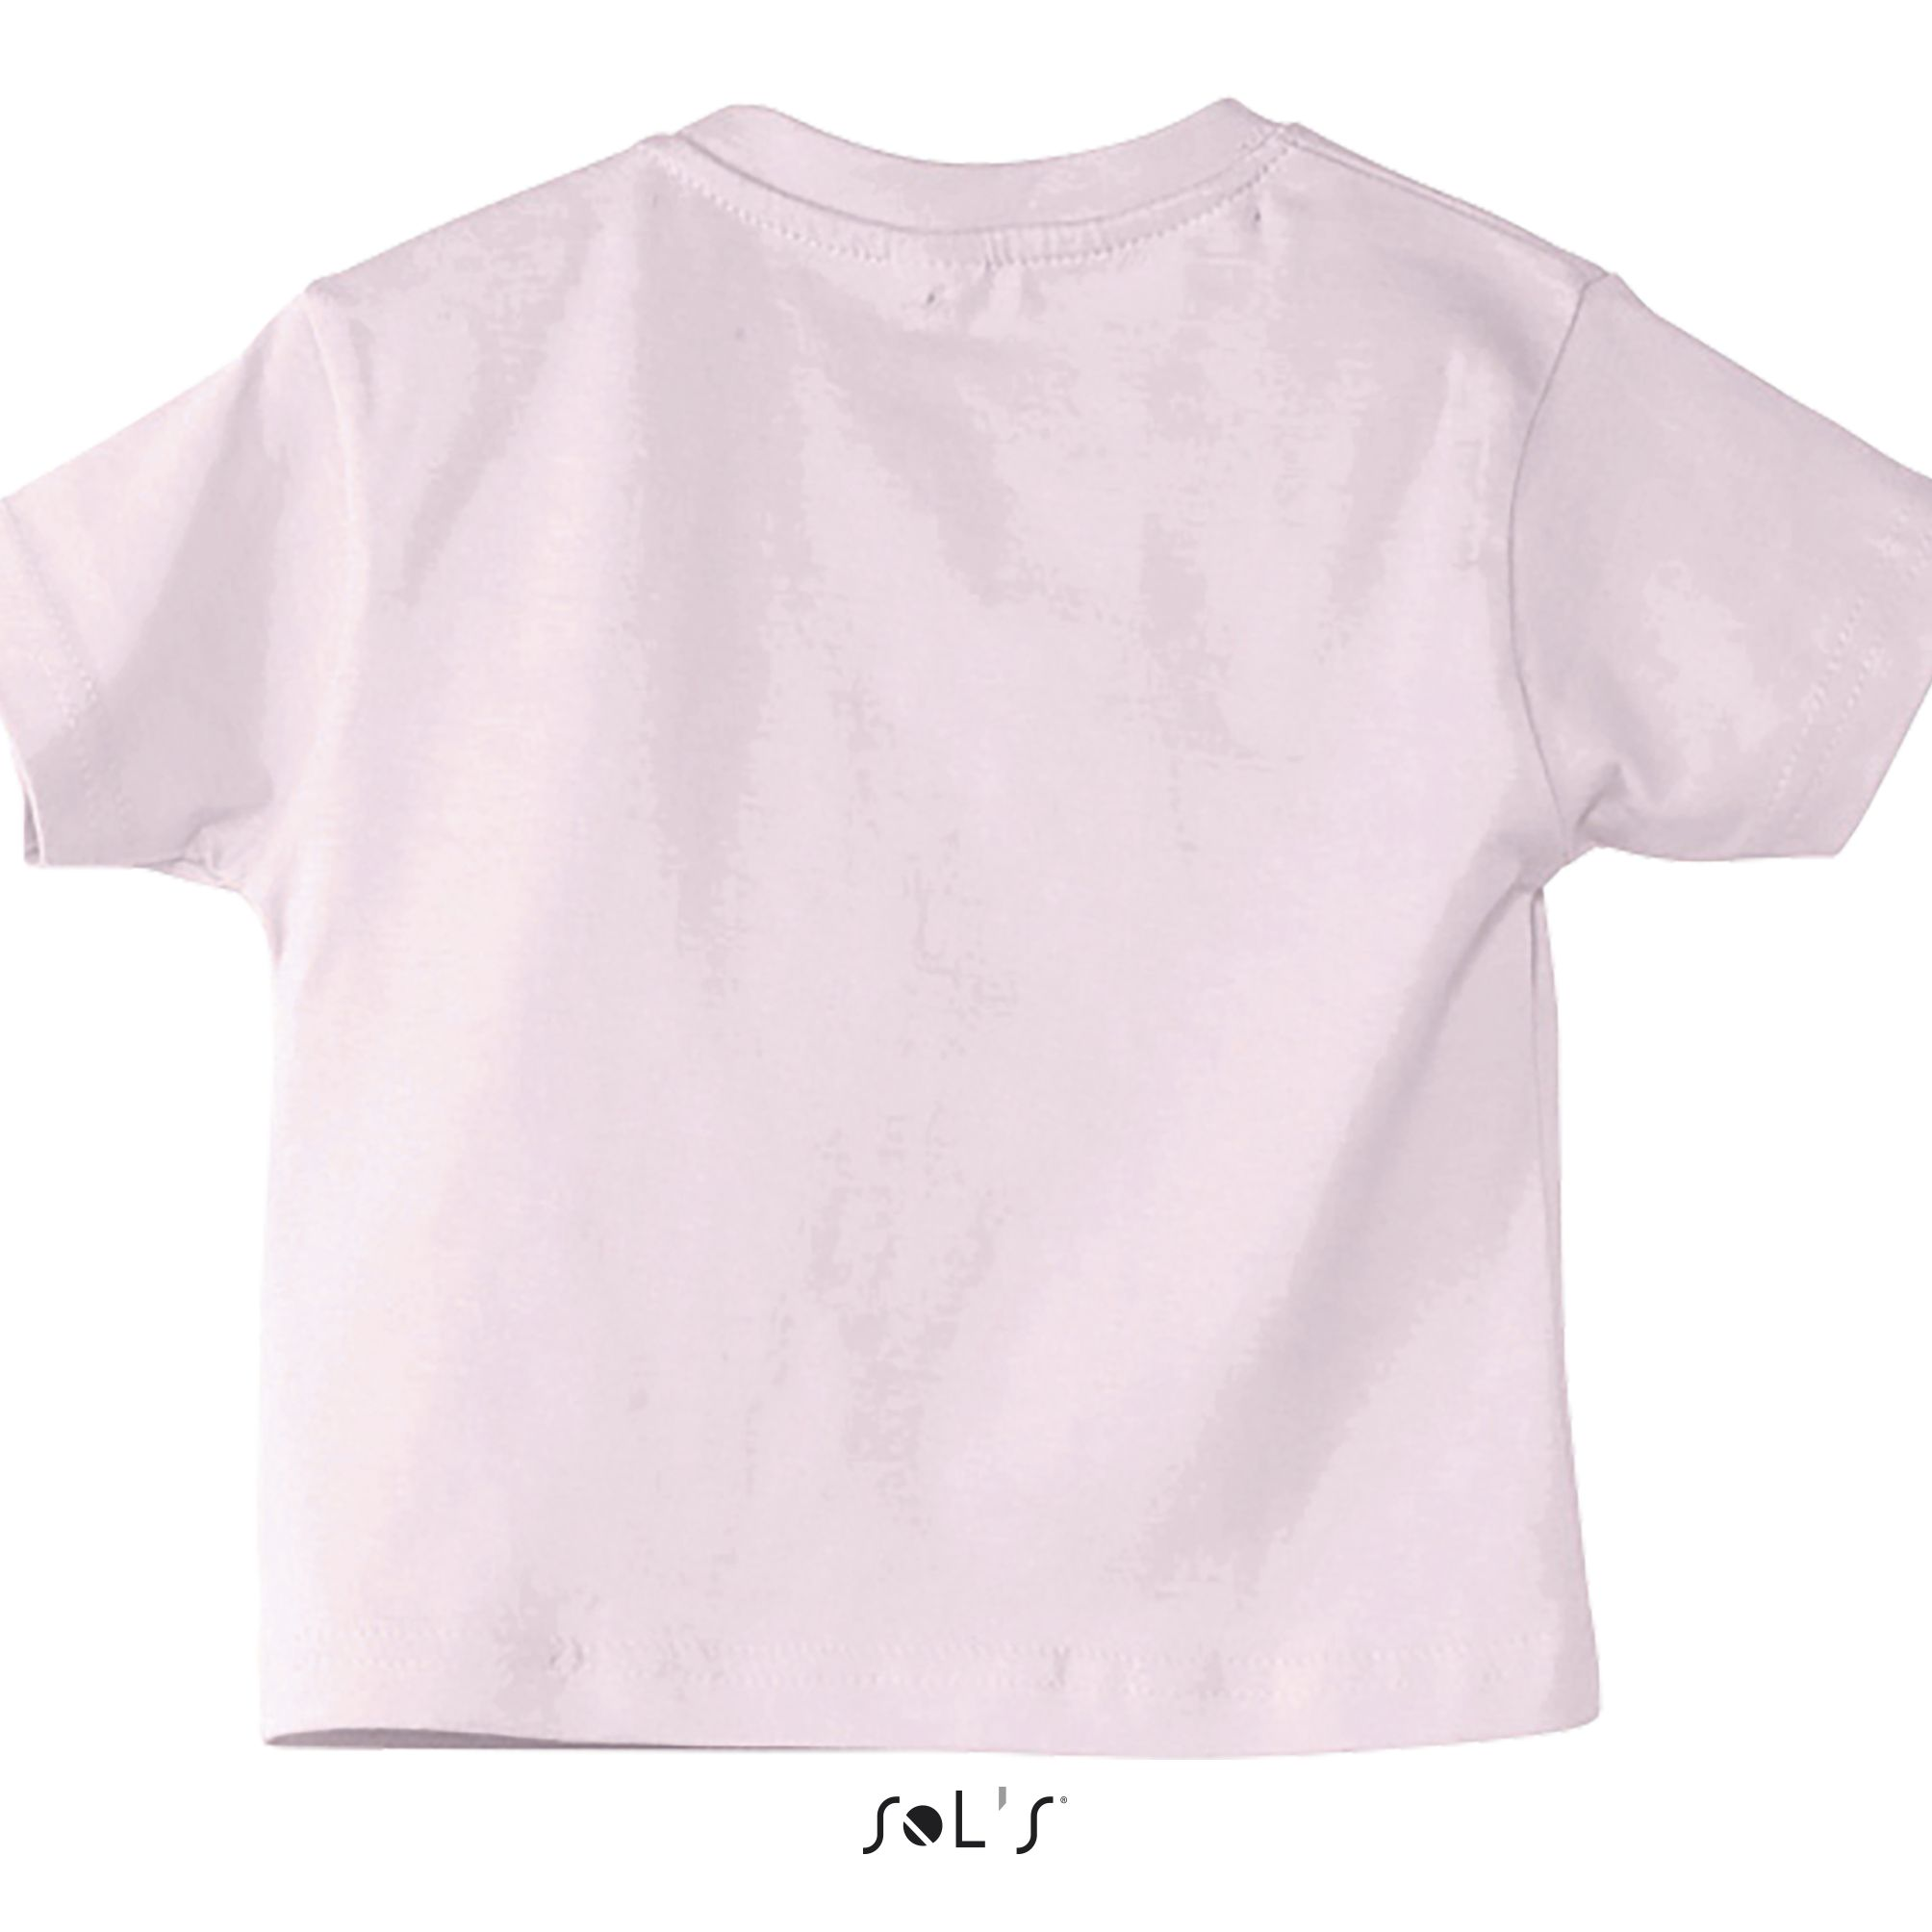 141 - Pale pink